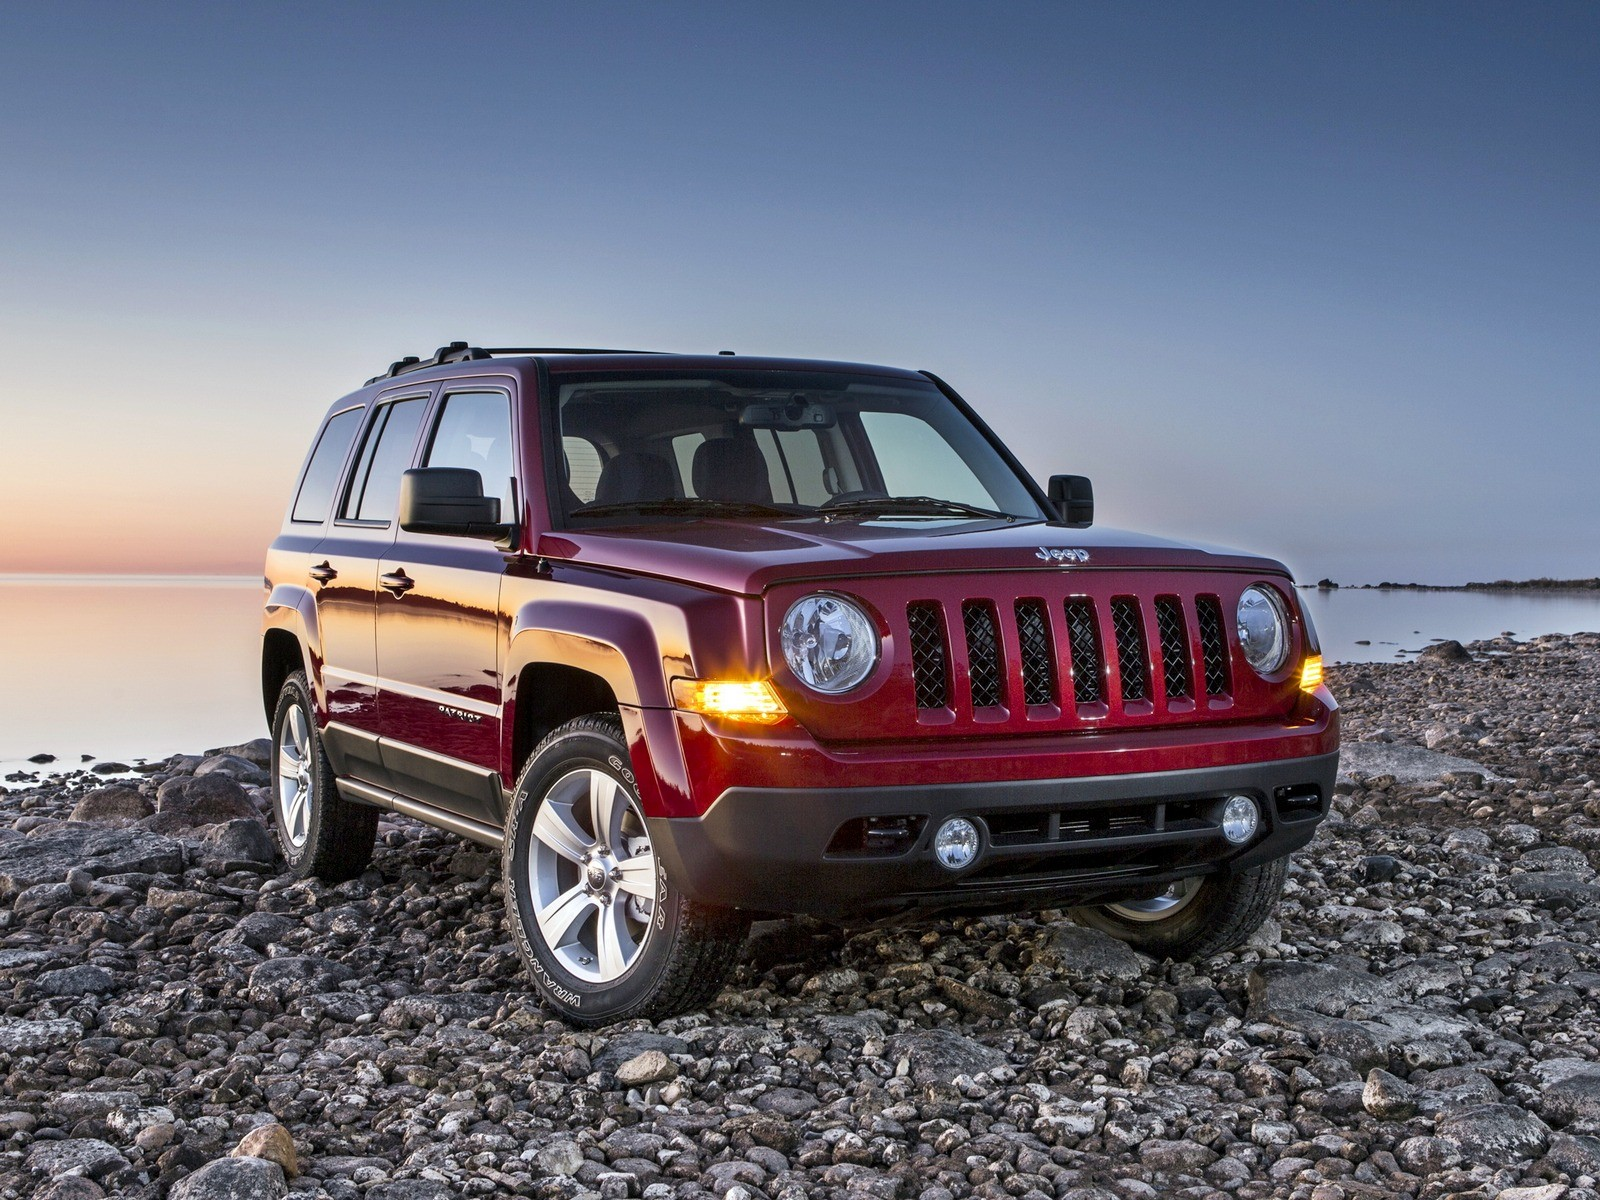 2017 jeep patriot recalls and problems - HD 1360×906